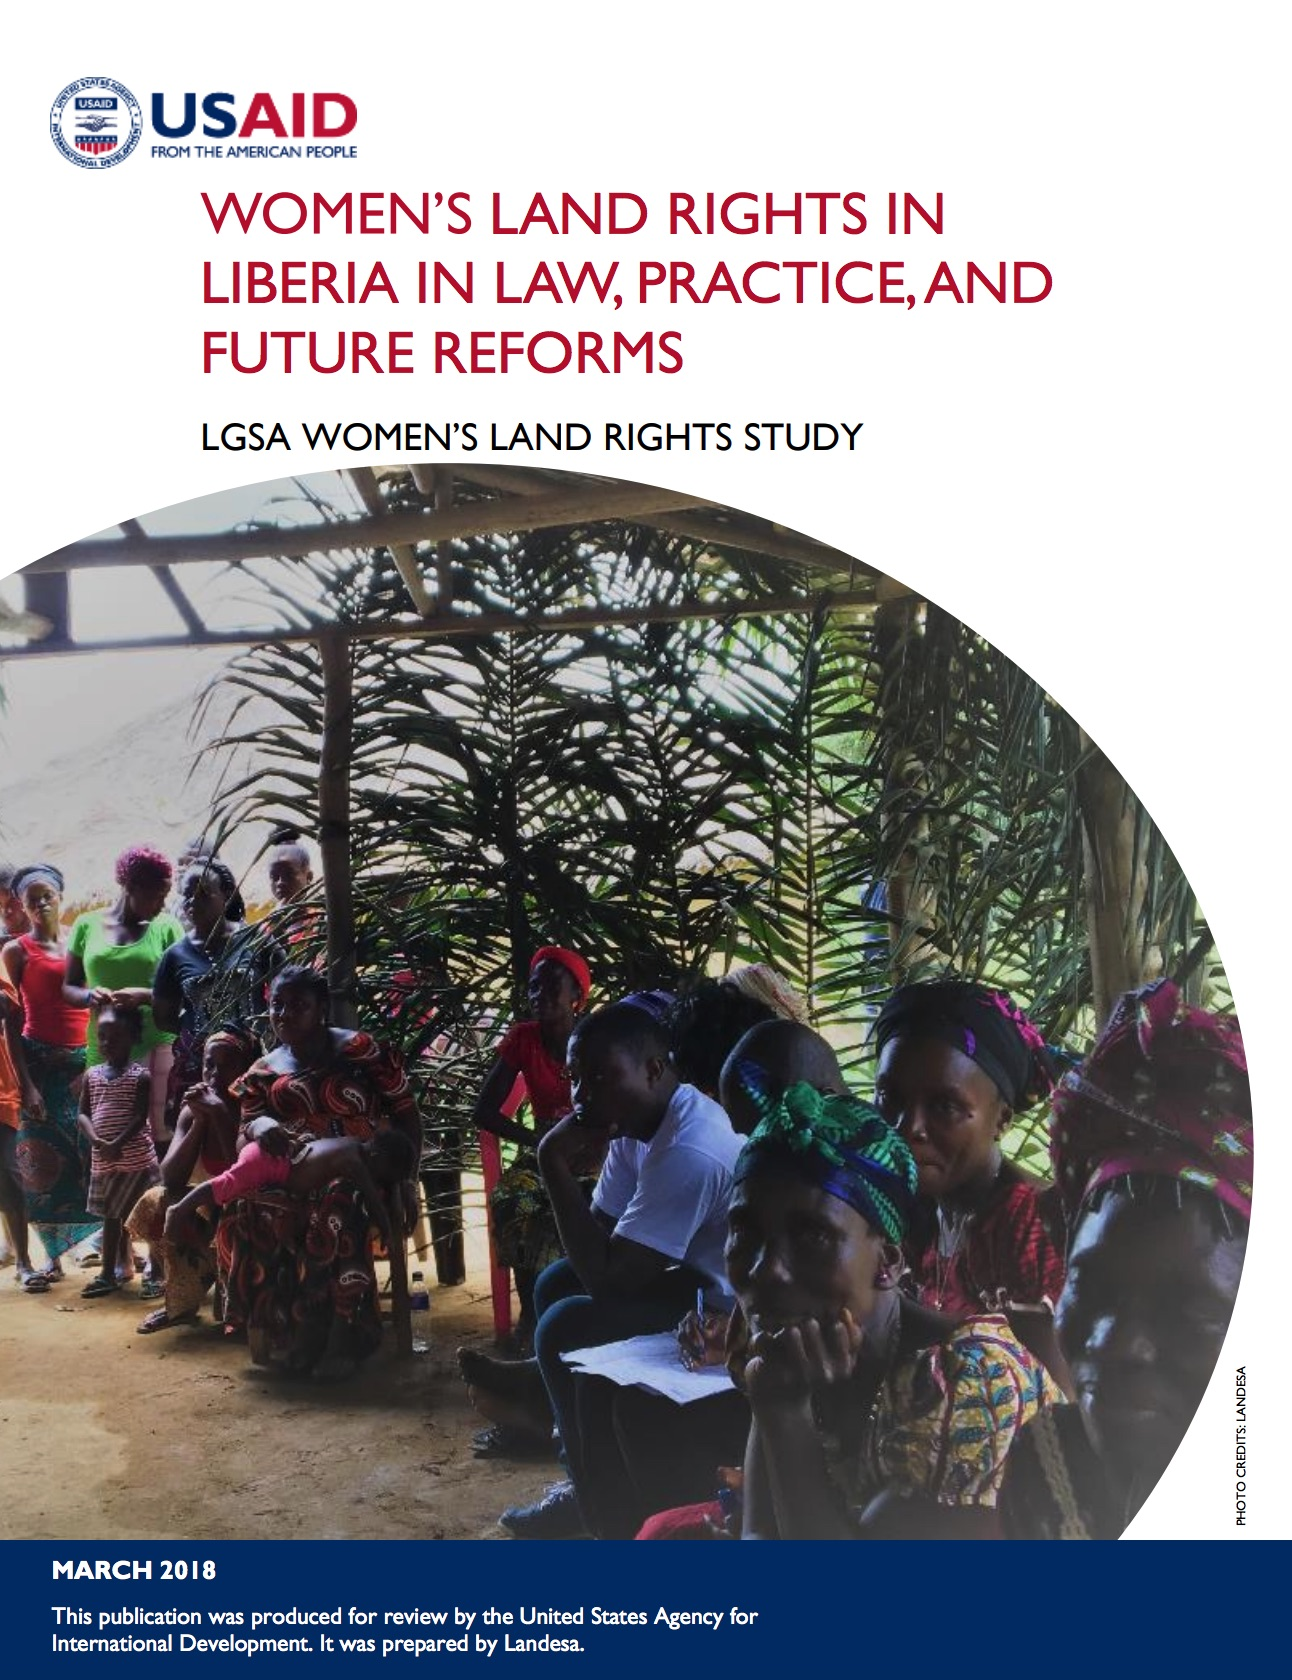 Women's Land Rights in Liberia in Law, Practice, and Future Reforms cover image